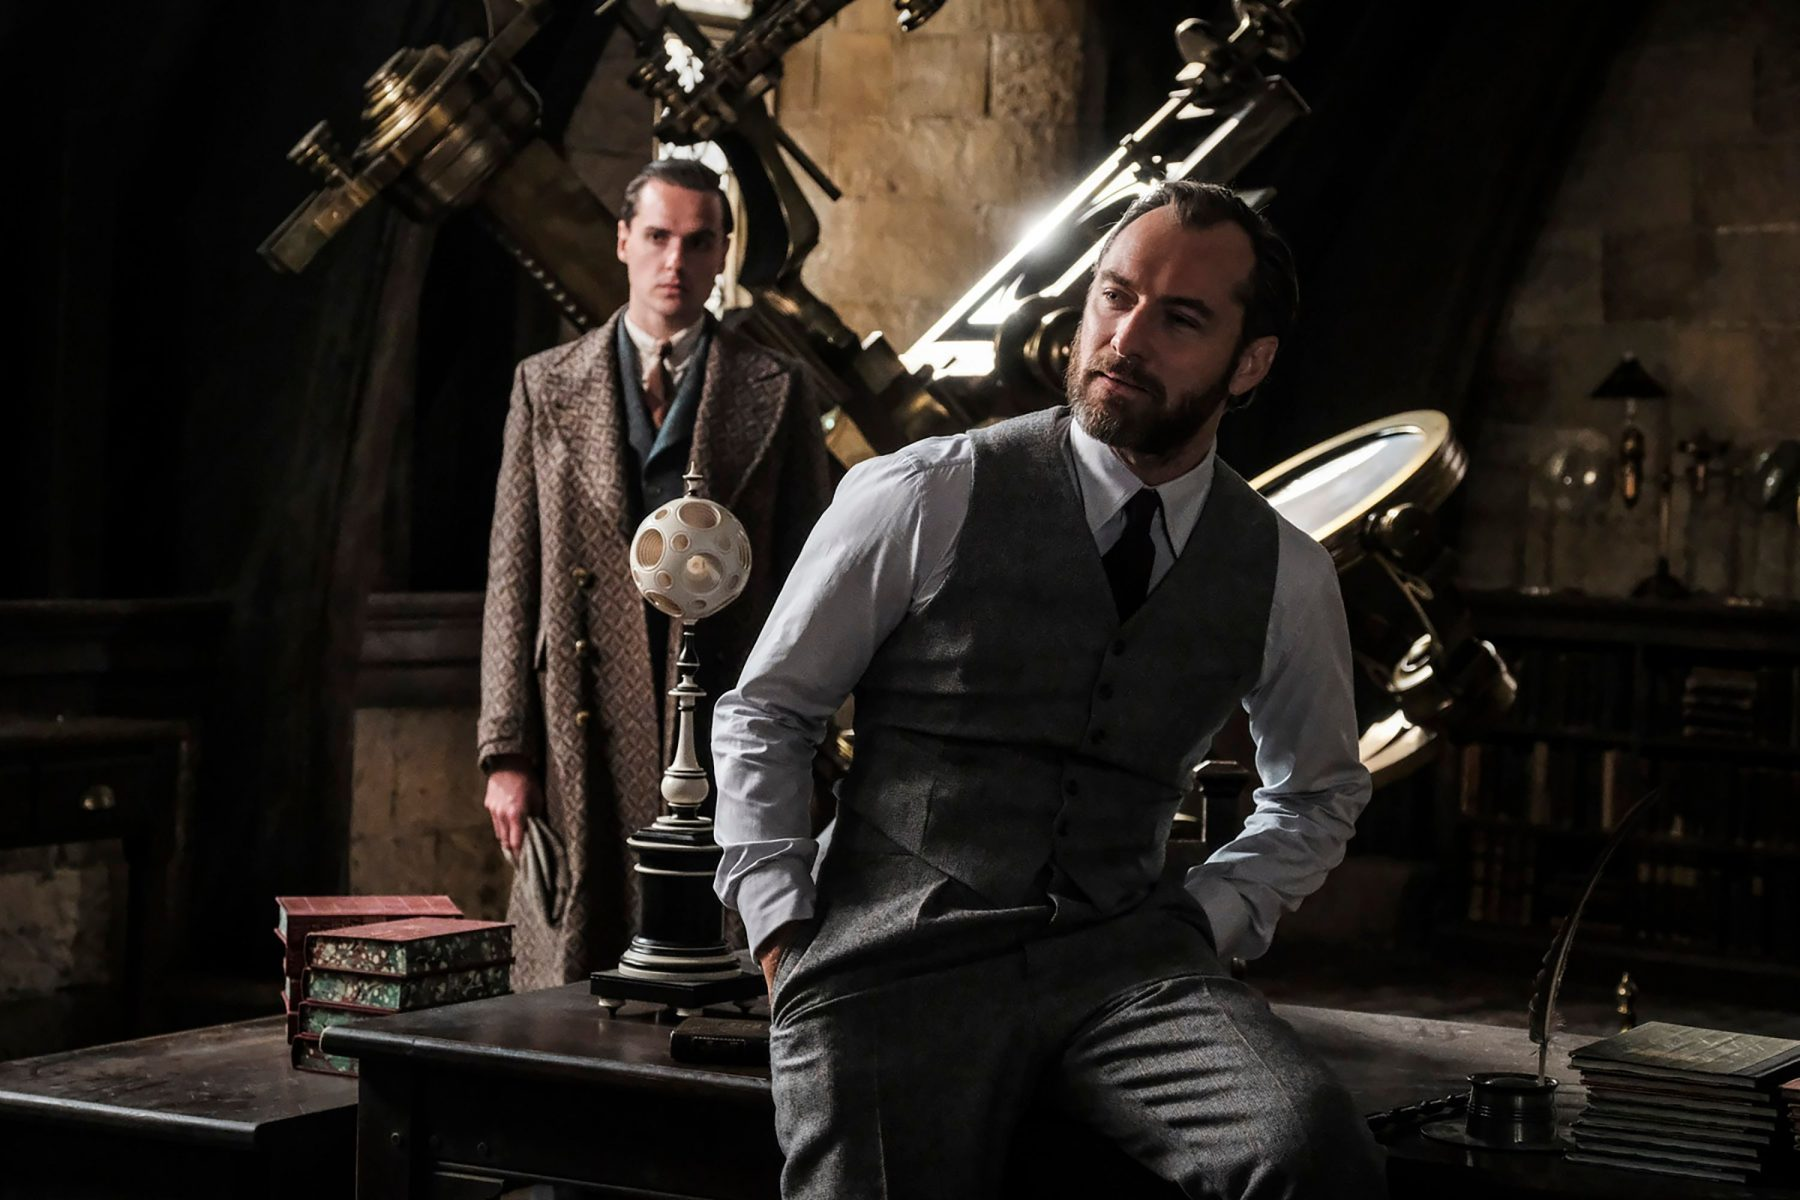 Fantastic Beasts The Crimes Of Grindelwald Hd Sceen